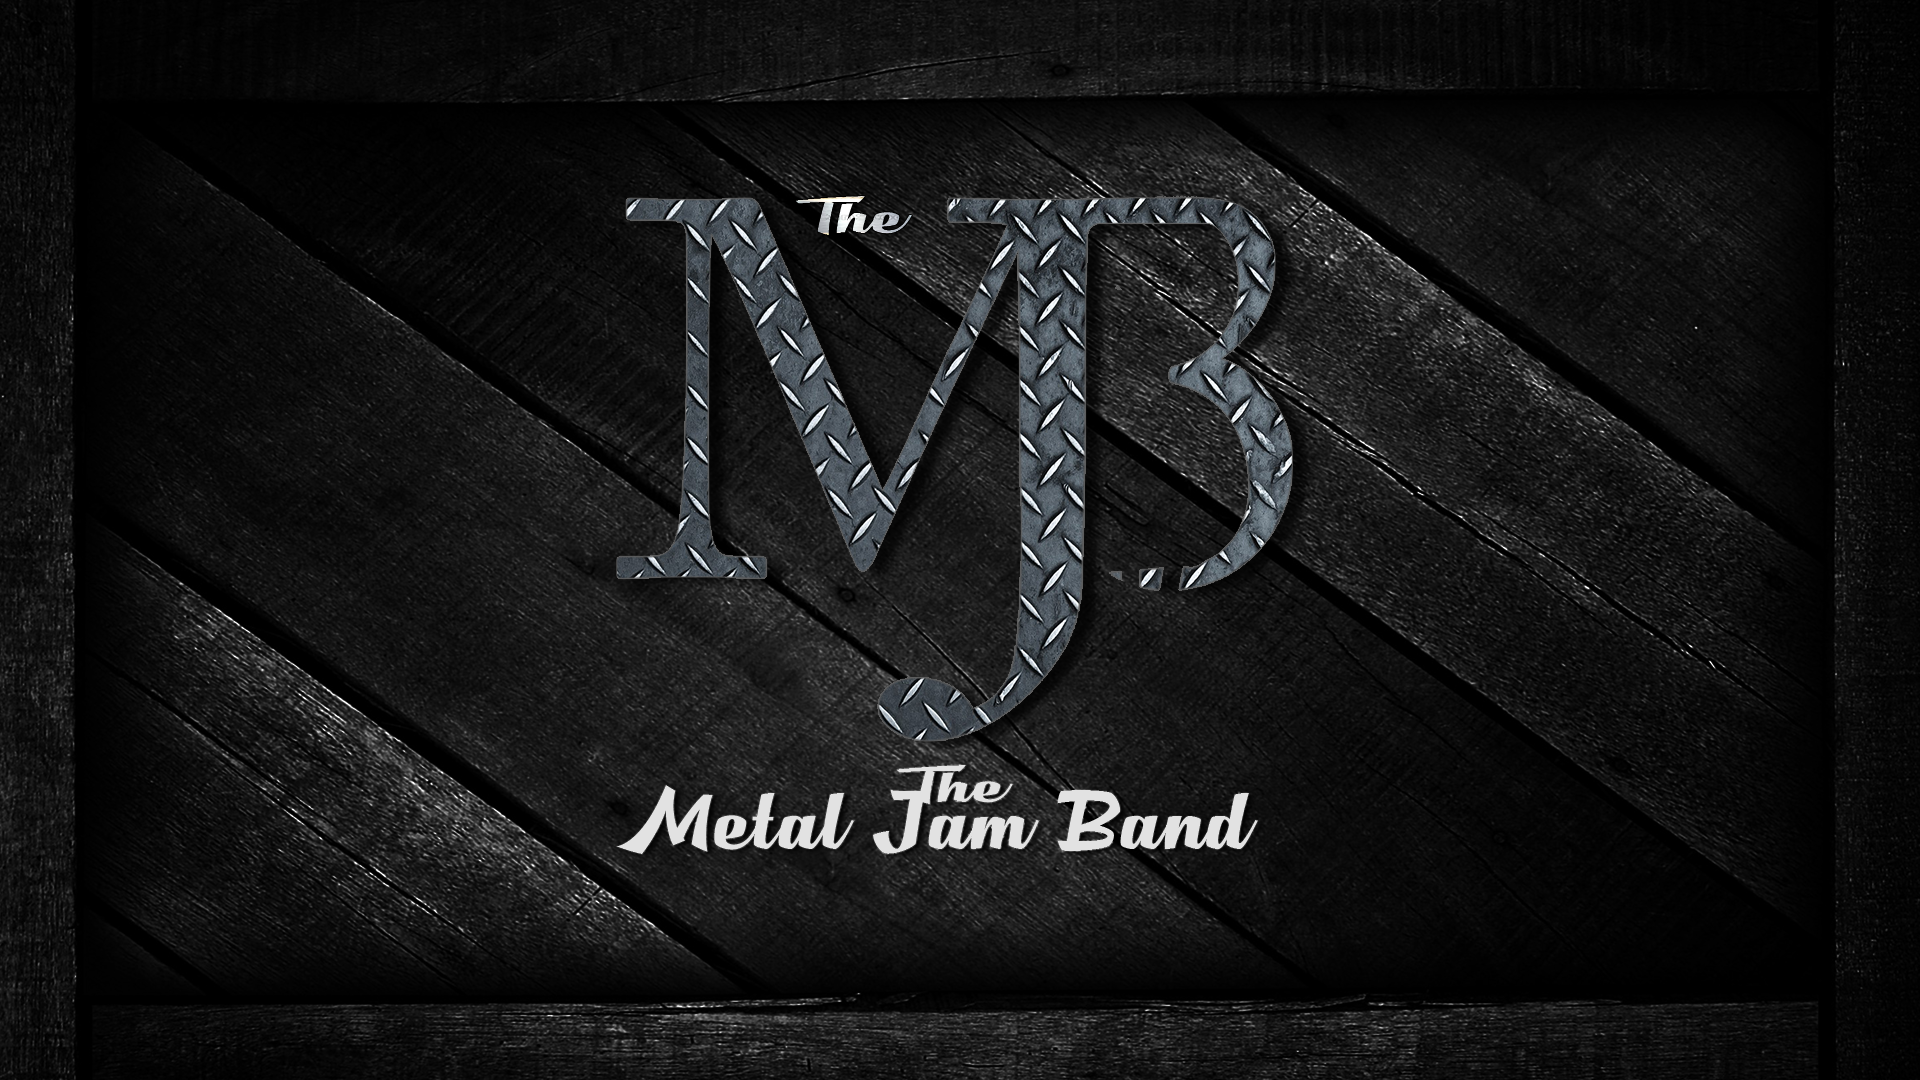 The MJ Band